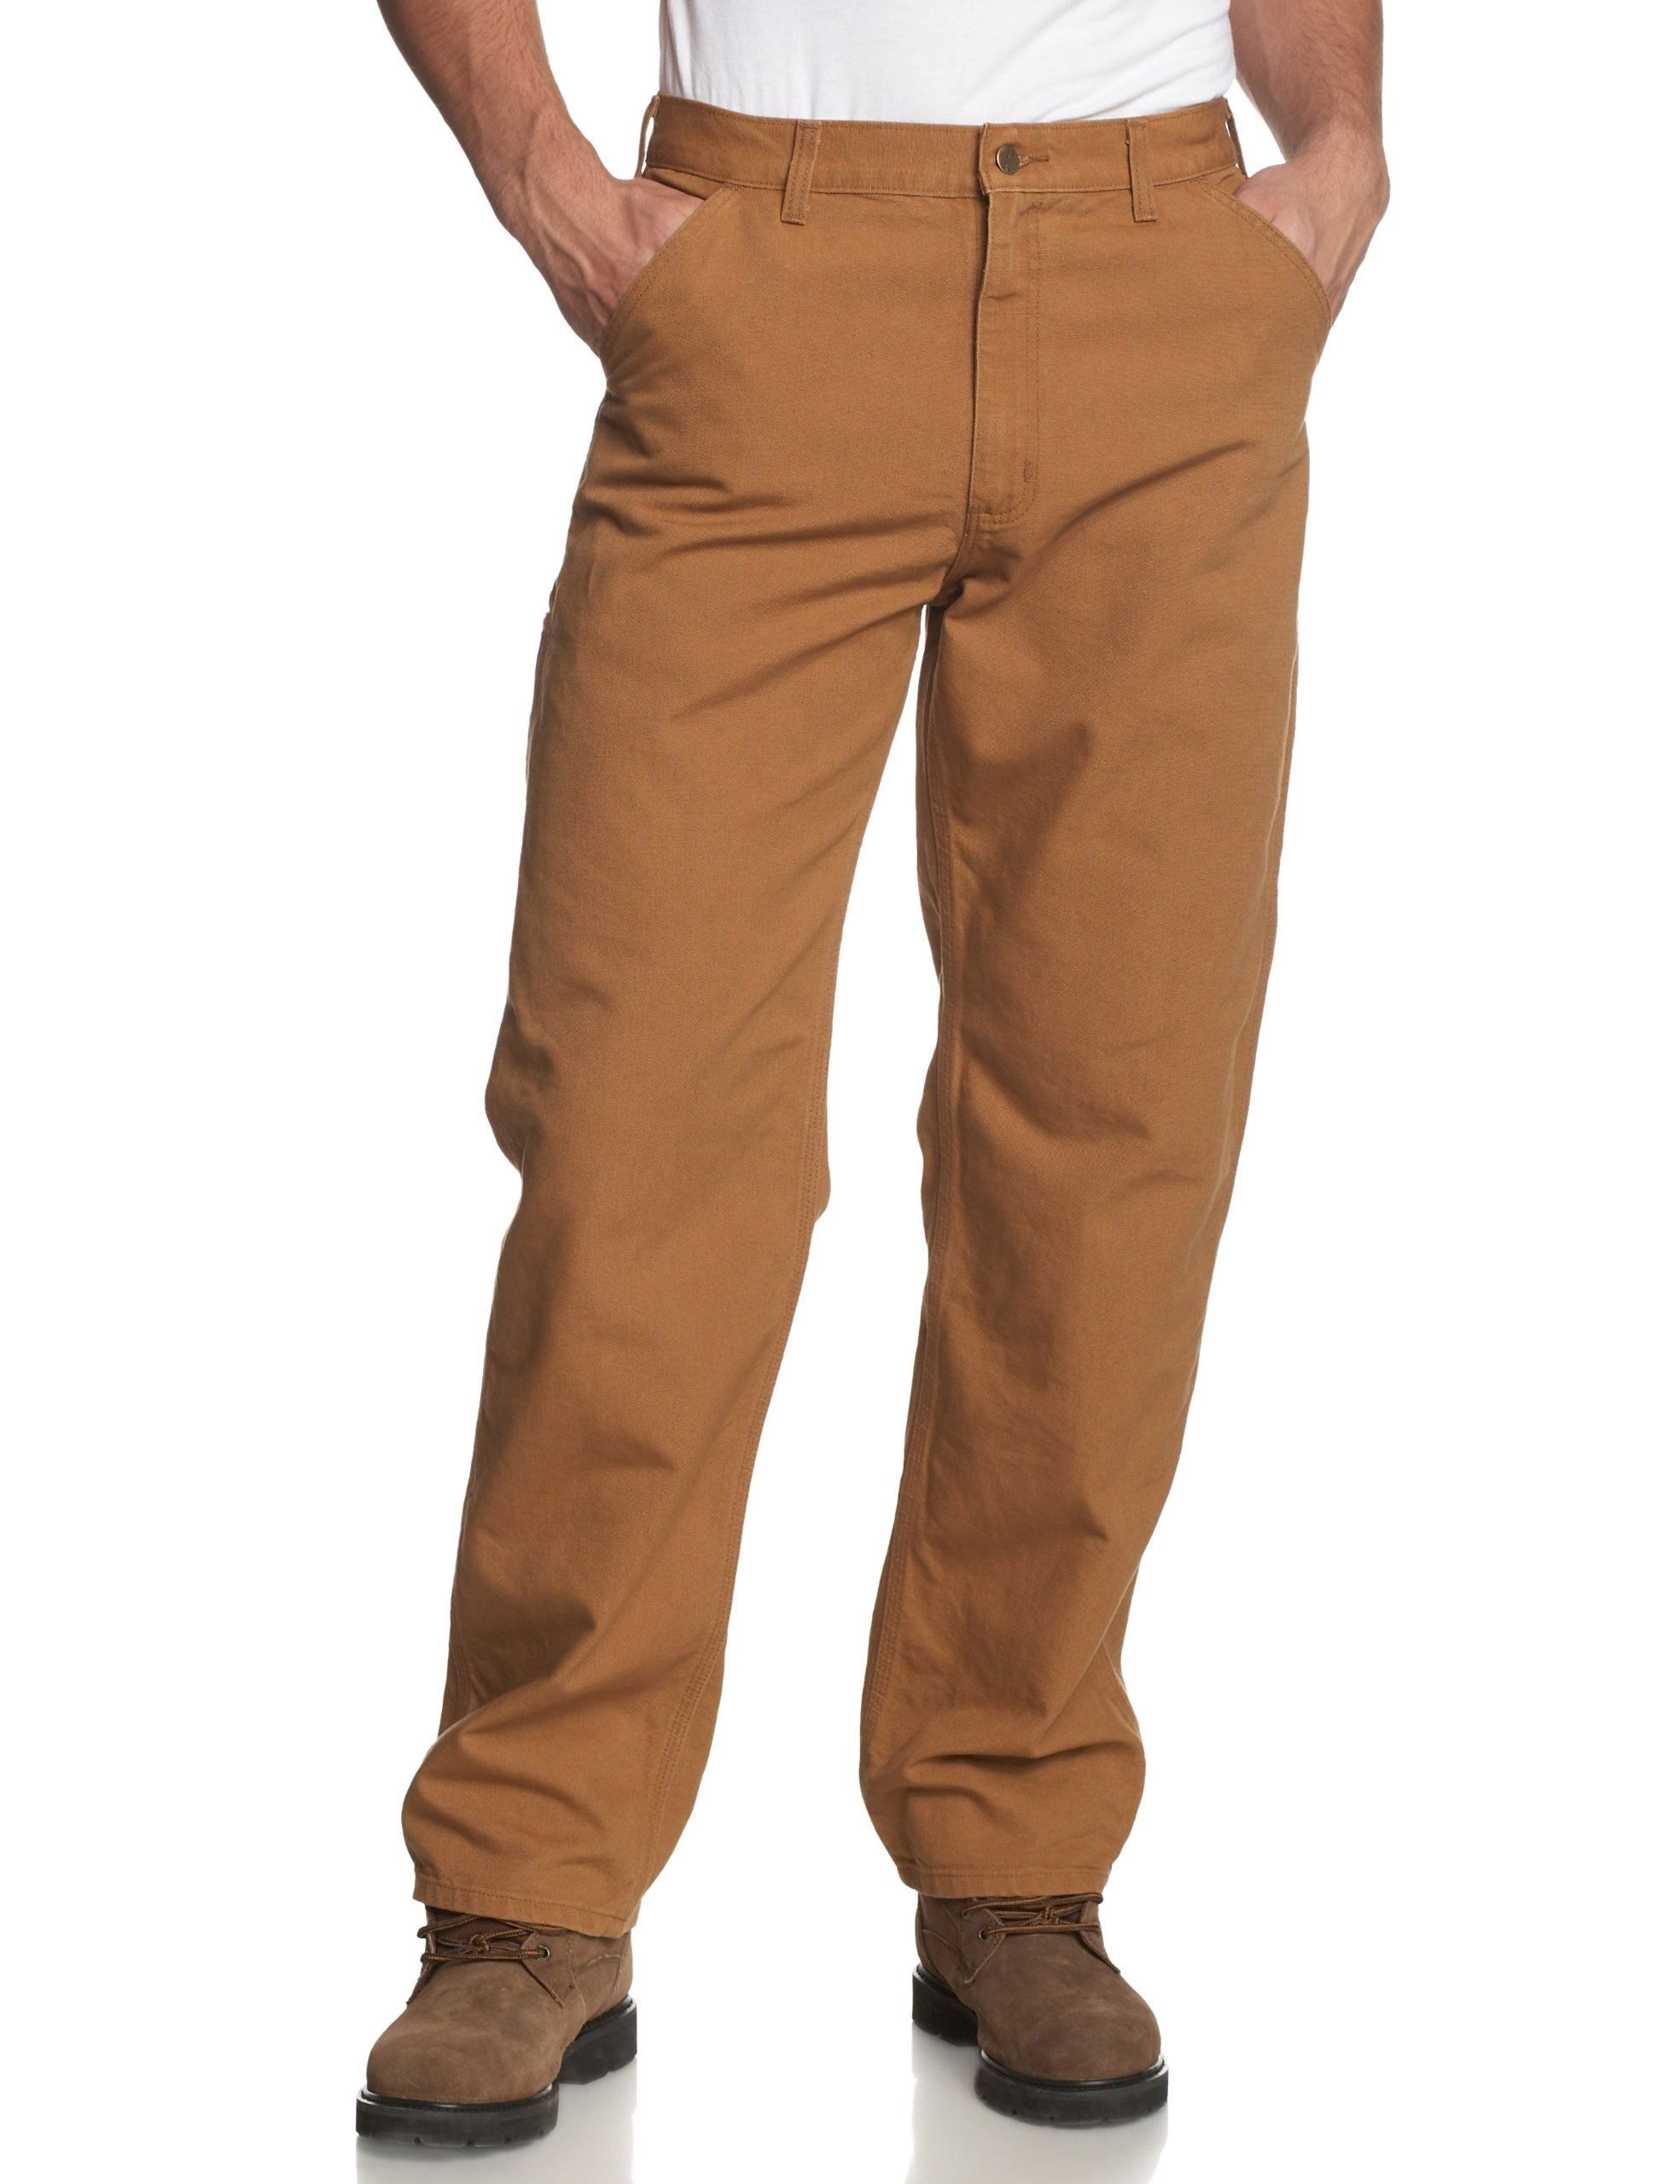 Carhartt Men's Washed Duck Work Dungaree Utility Pant B11,Carhartt Brown,34 x 32